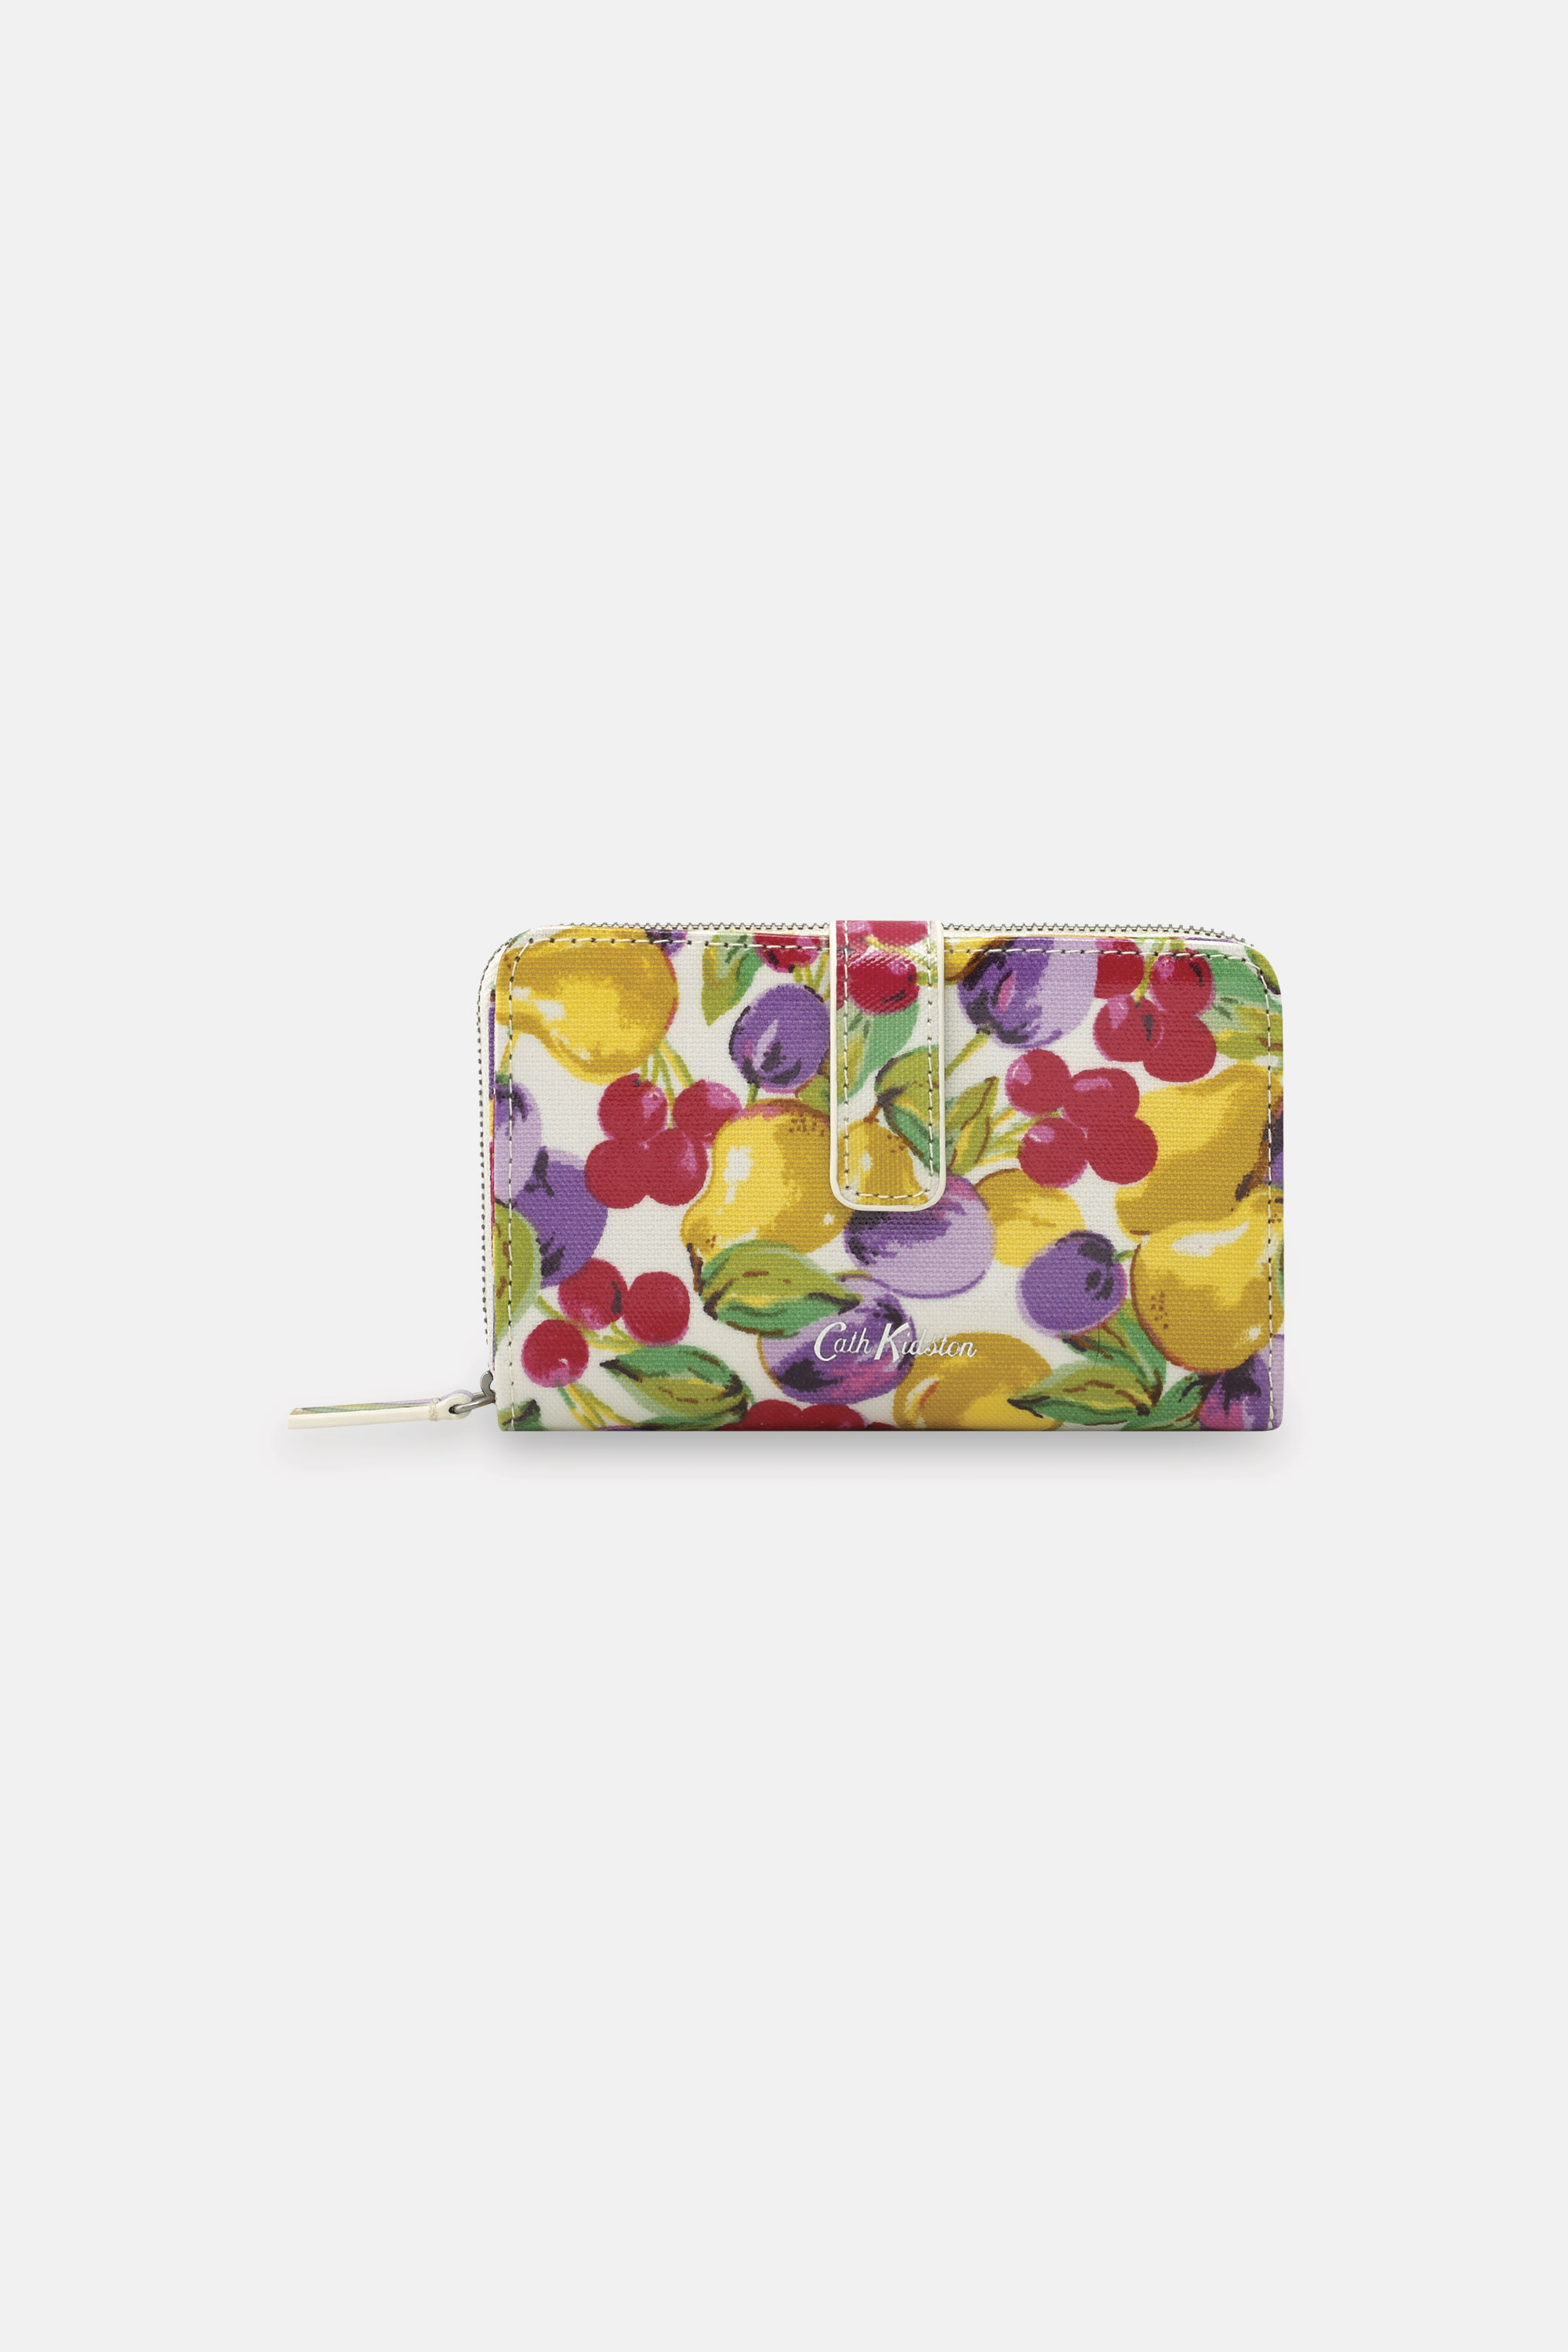 Cath Kidston Small Painted Fruit Folded Zip Wallet in Warm Cream